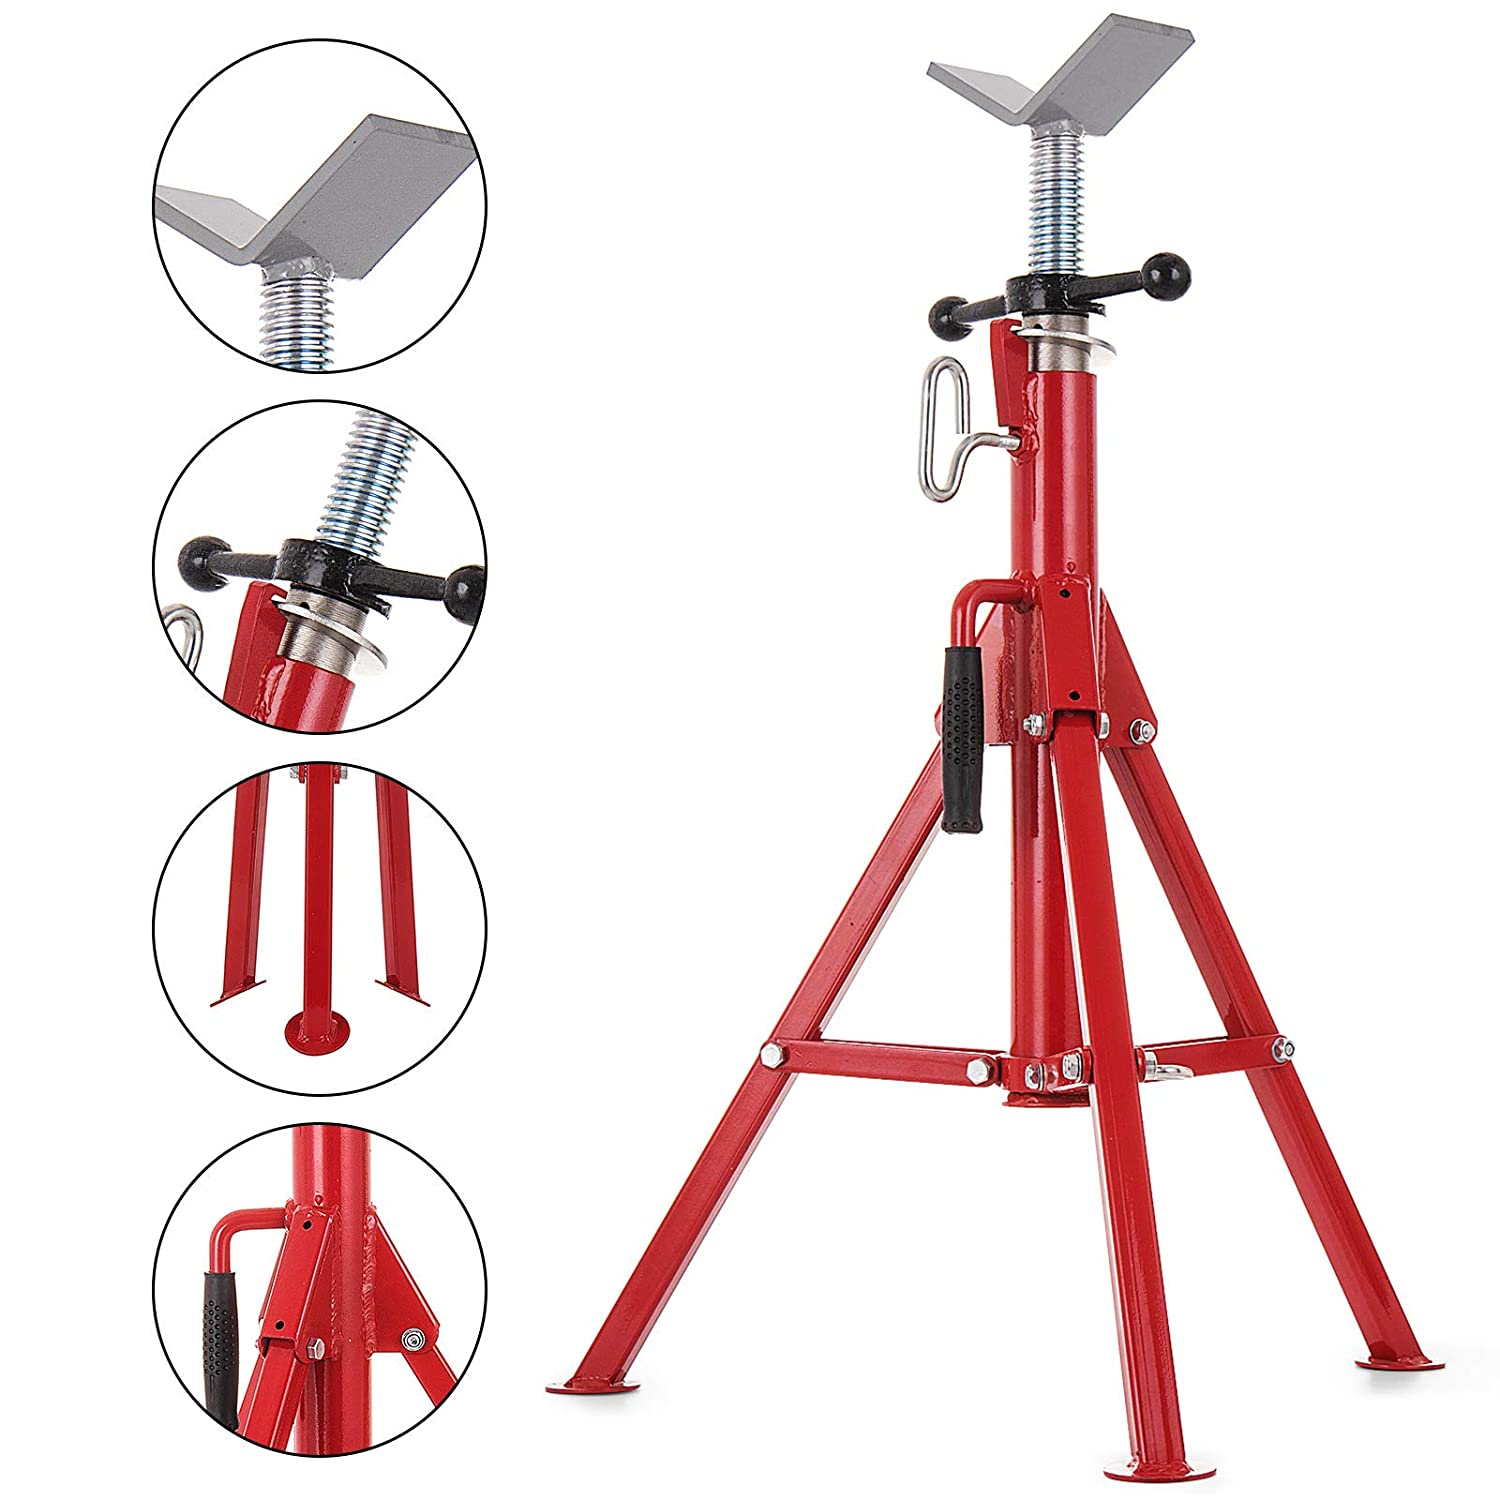 Pipe Jack Stands >> Mophorn 1 2 12 V Head Pipe Stand Adjustable Height 28 52 Inch Pipe